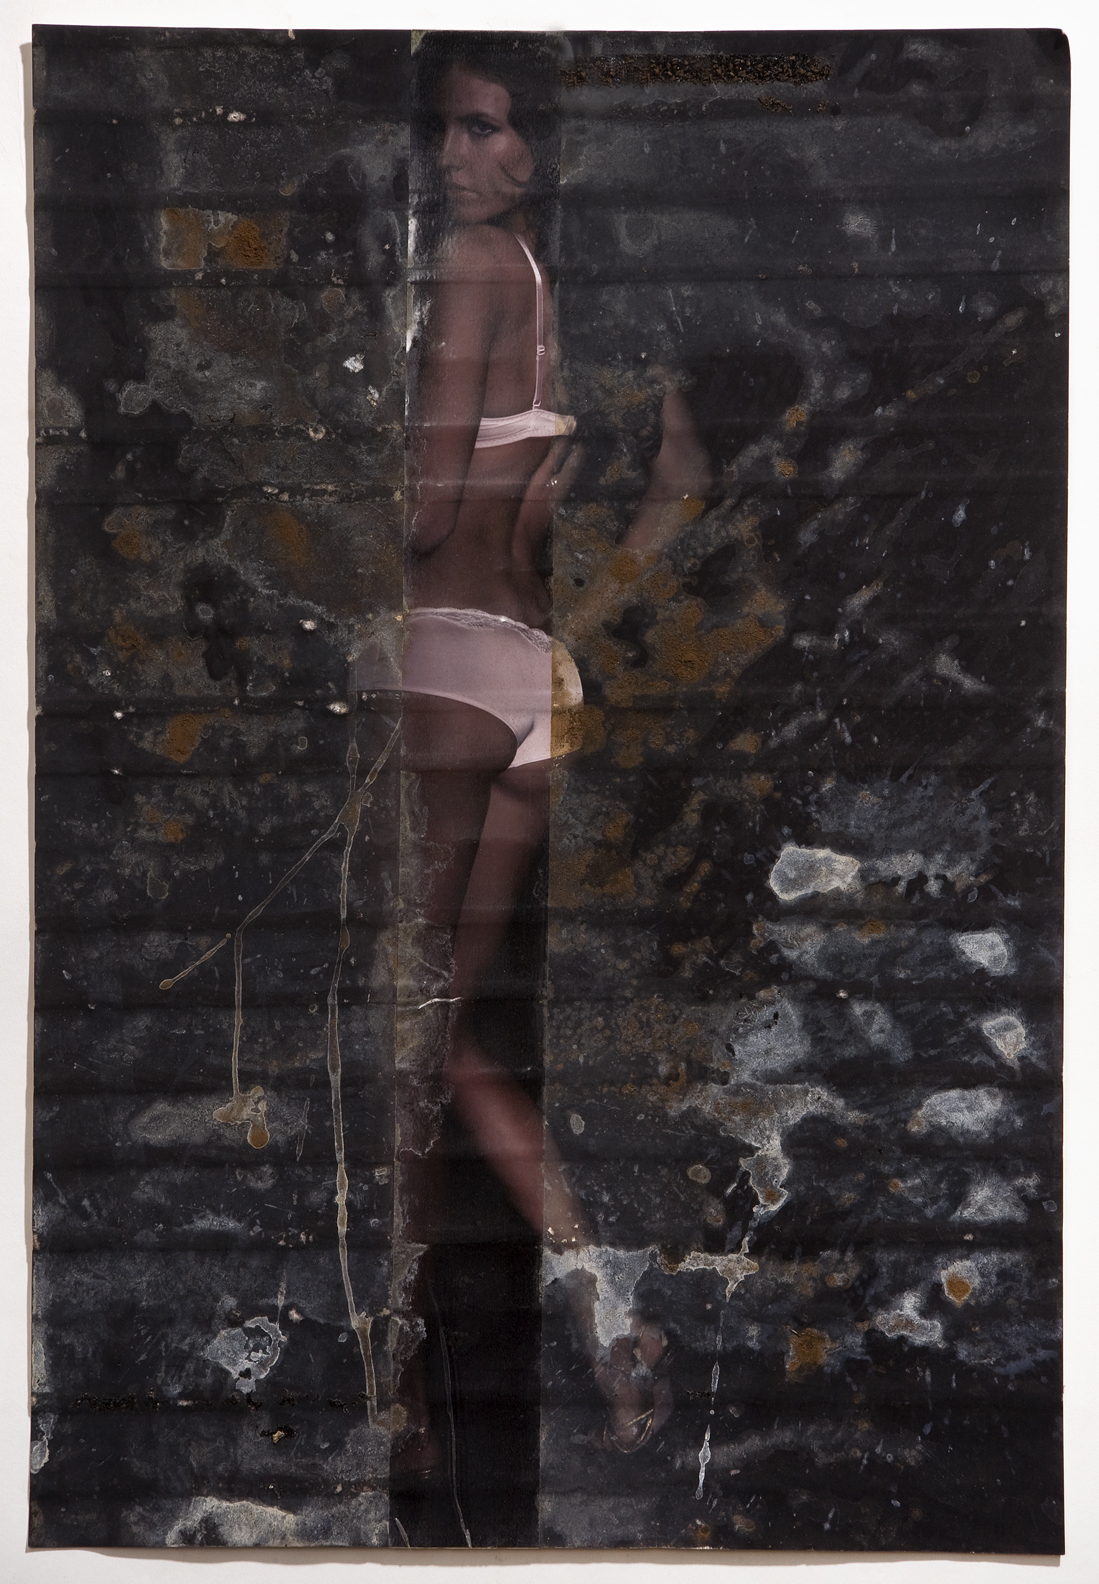 "Marina, inkjet print, packing tape, coffee, coffee grounds, milk, 13""x19"", 2010"